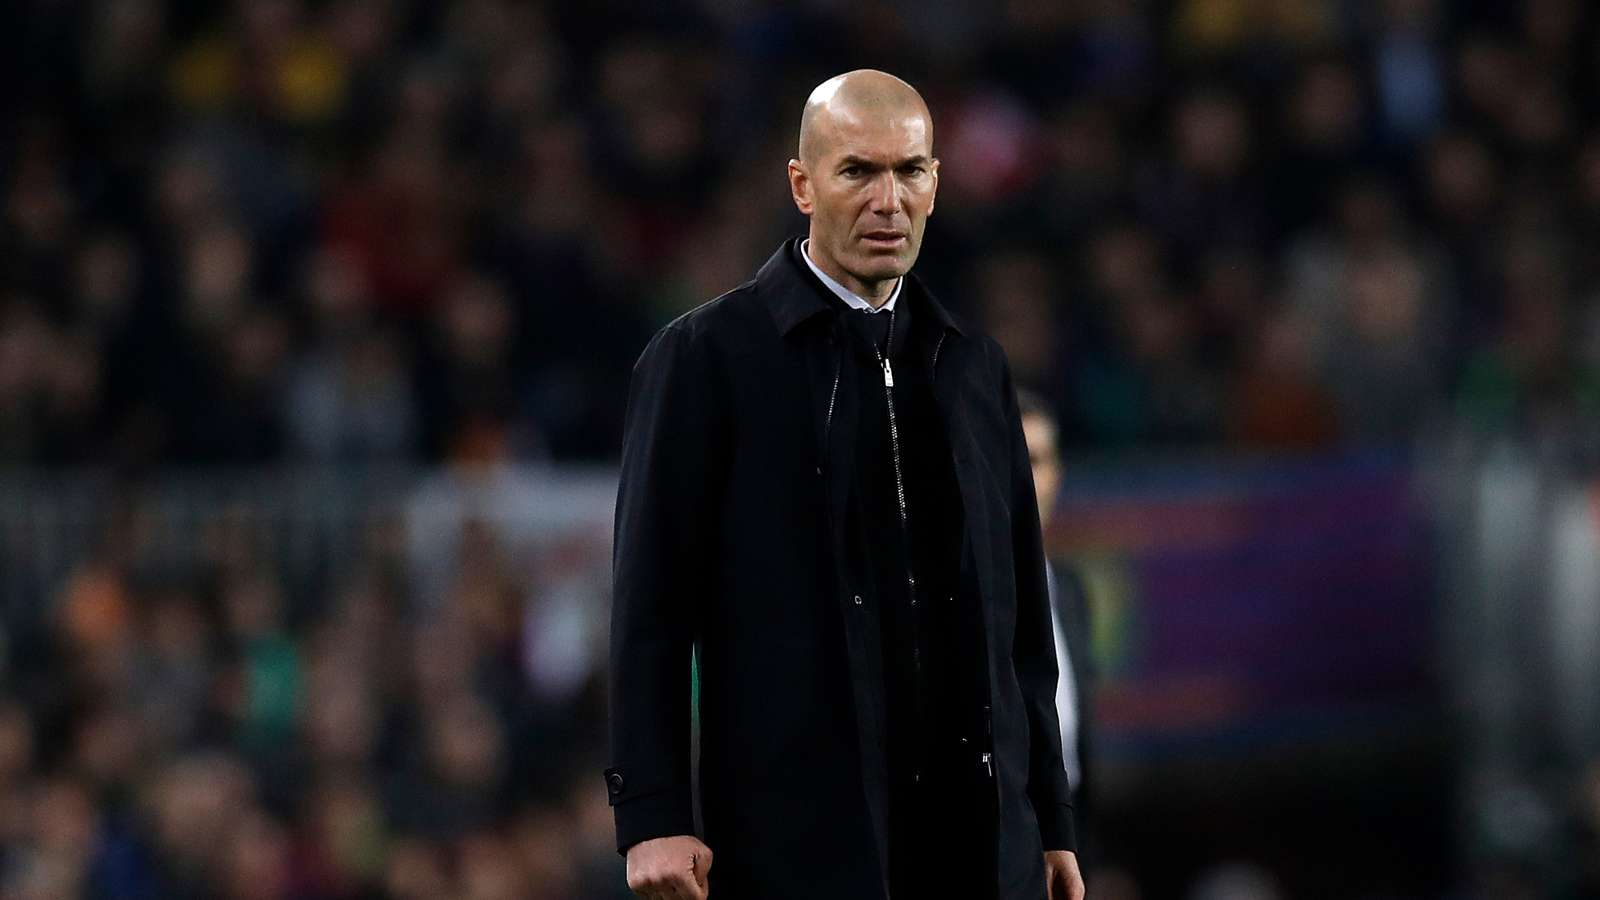 Zidane: Guardiola is the best in the world and I will not talk about Pogba